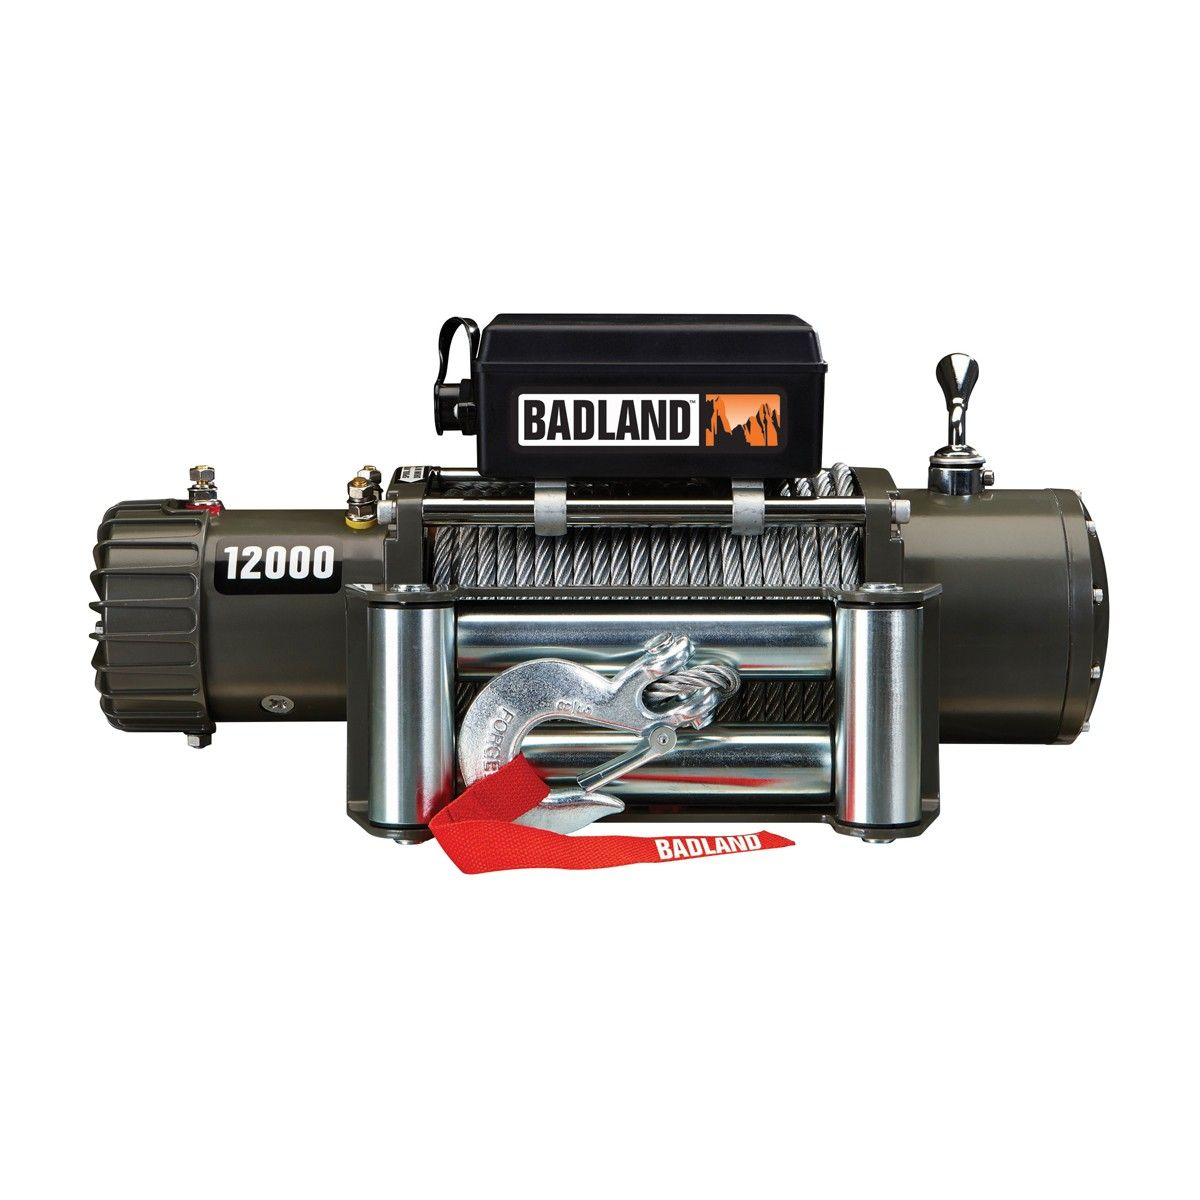 medium resolution of 12000 lb off road vehicle electric winch with automatic load holding brake from harbor freight note there is a coupon that makes this item 299 in stores